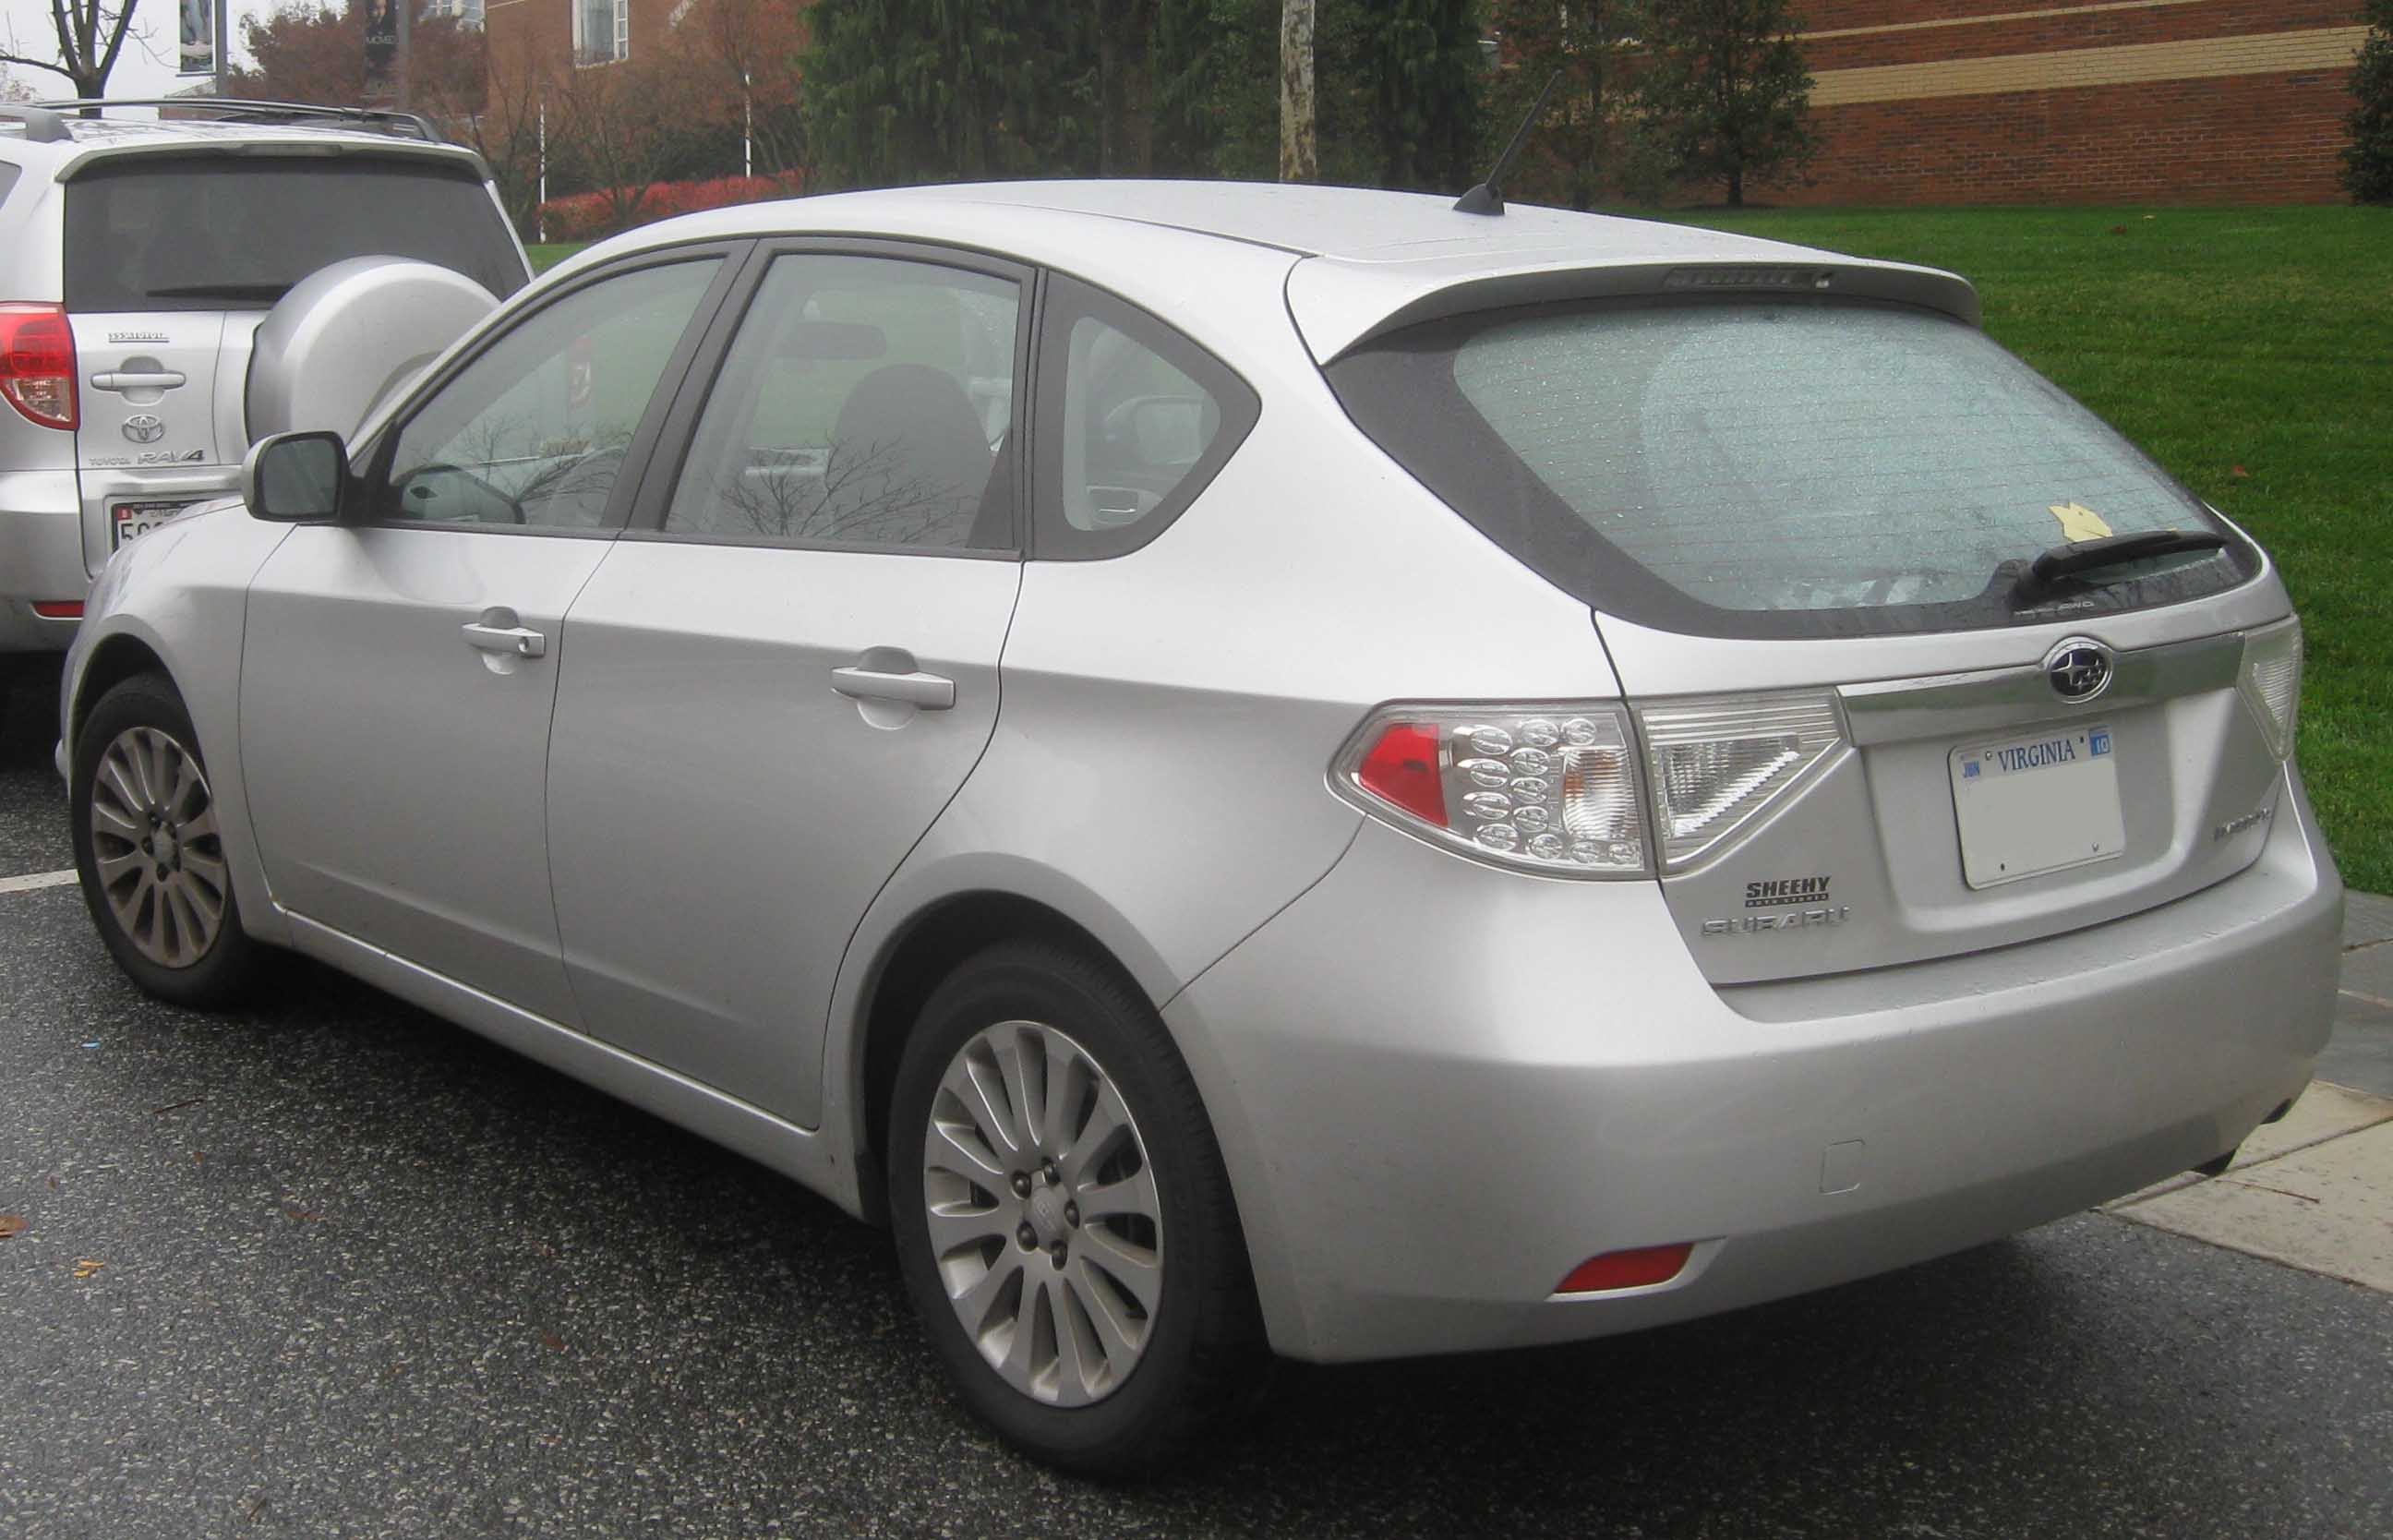 file:08 subaru impreza 2.5i hatch rear - wikimedia commons